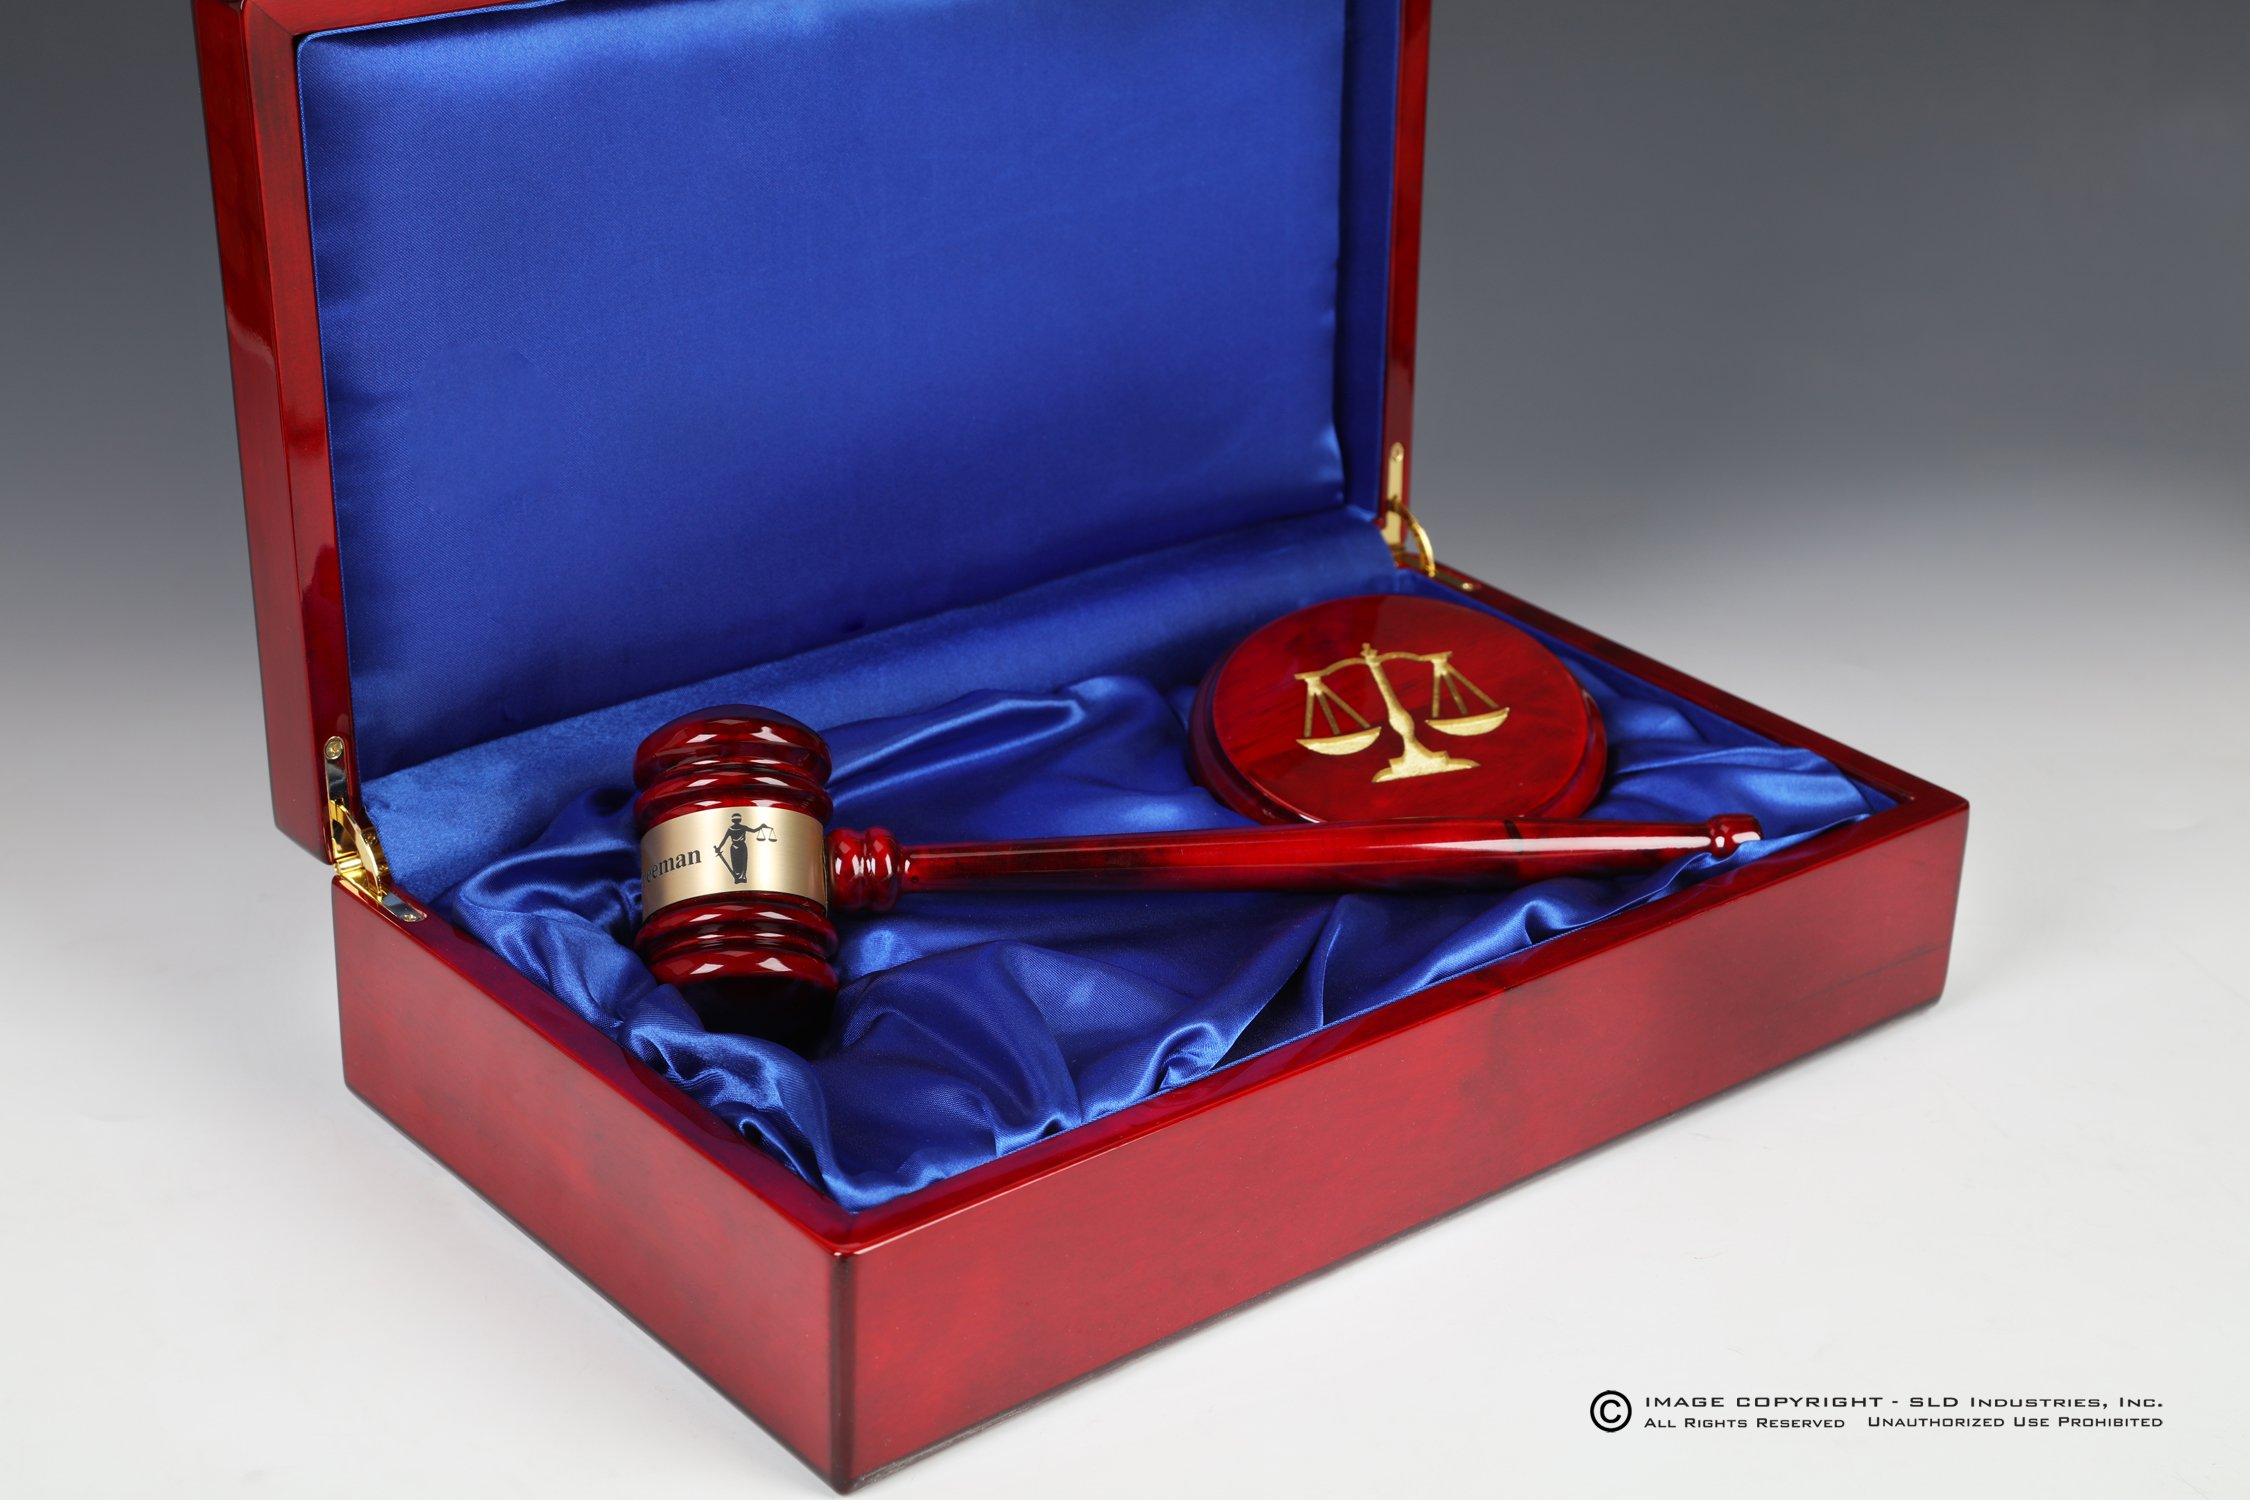 Gavel Gift Set Rosewood Piano Wood Presentation Box, Sounding Block Laser Engraved and Color Filled,and Engraved Plate on Box and Gavel Band, Lawyer Gift, Judge Gift, Mayor Gift, City Council